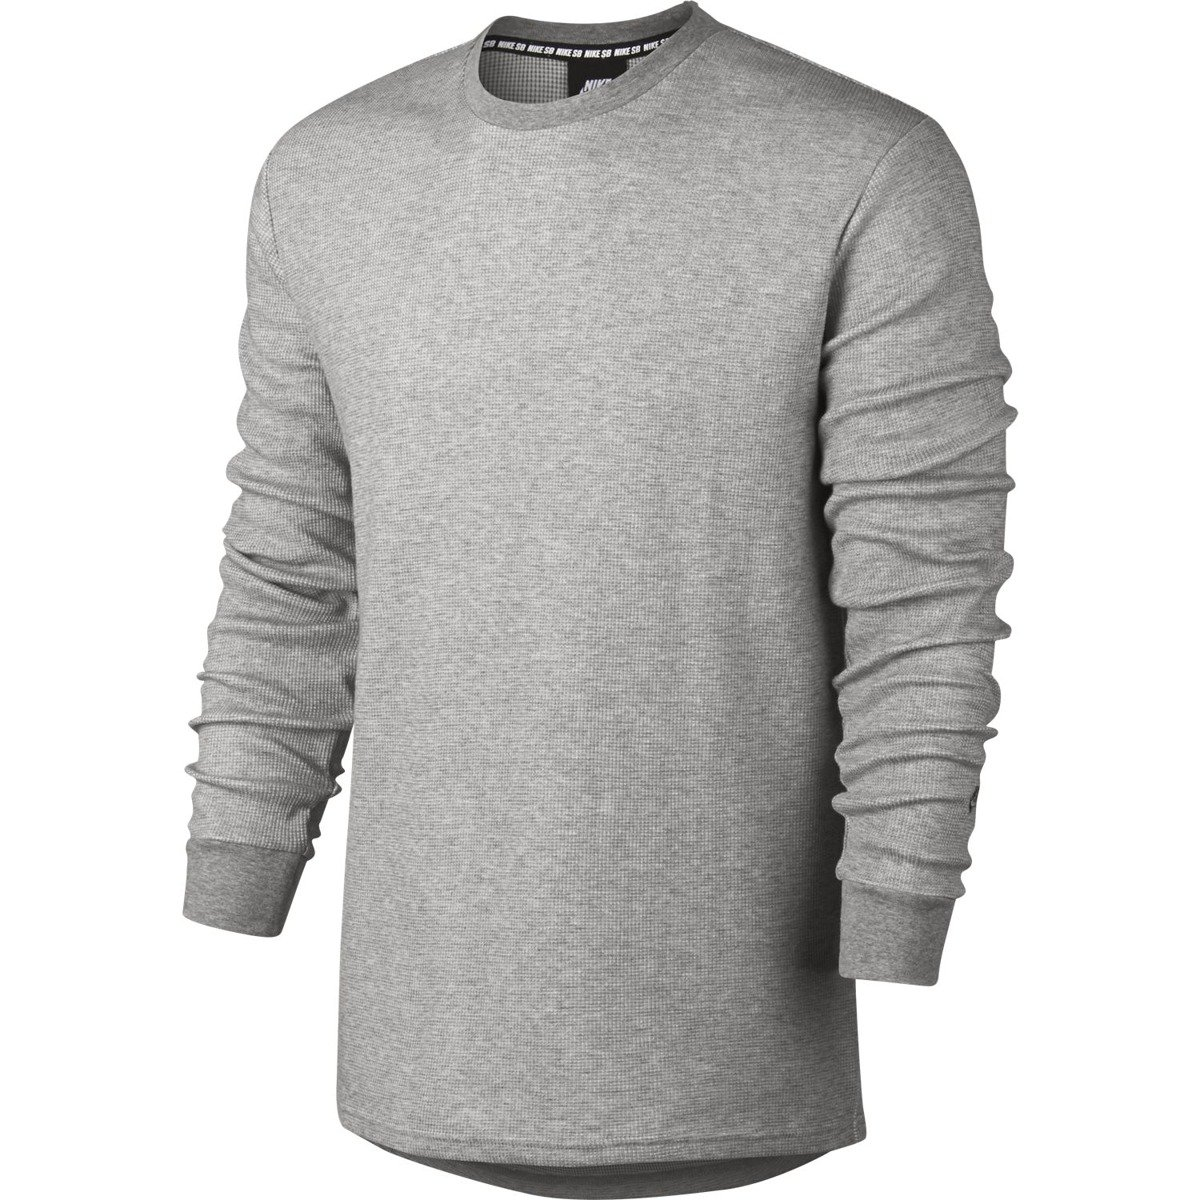 efbedf14 Miniramp Skateshop nike sb long-sleeve thermal top dk grey heather/dark  steel grey